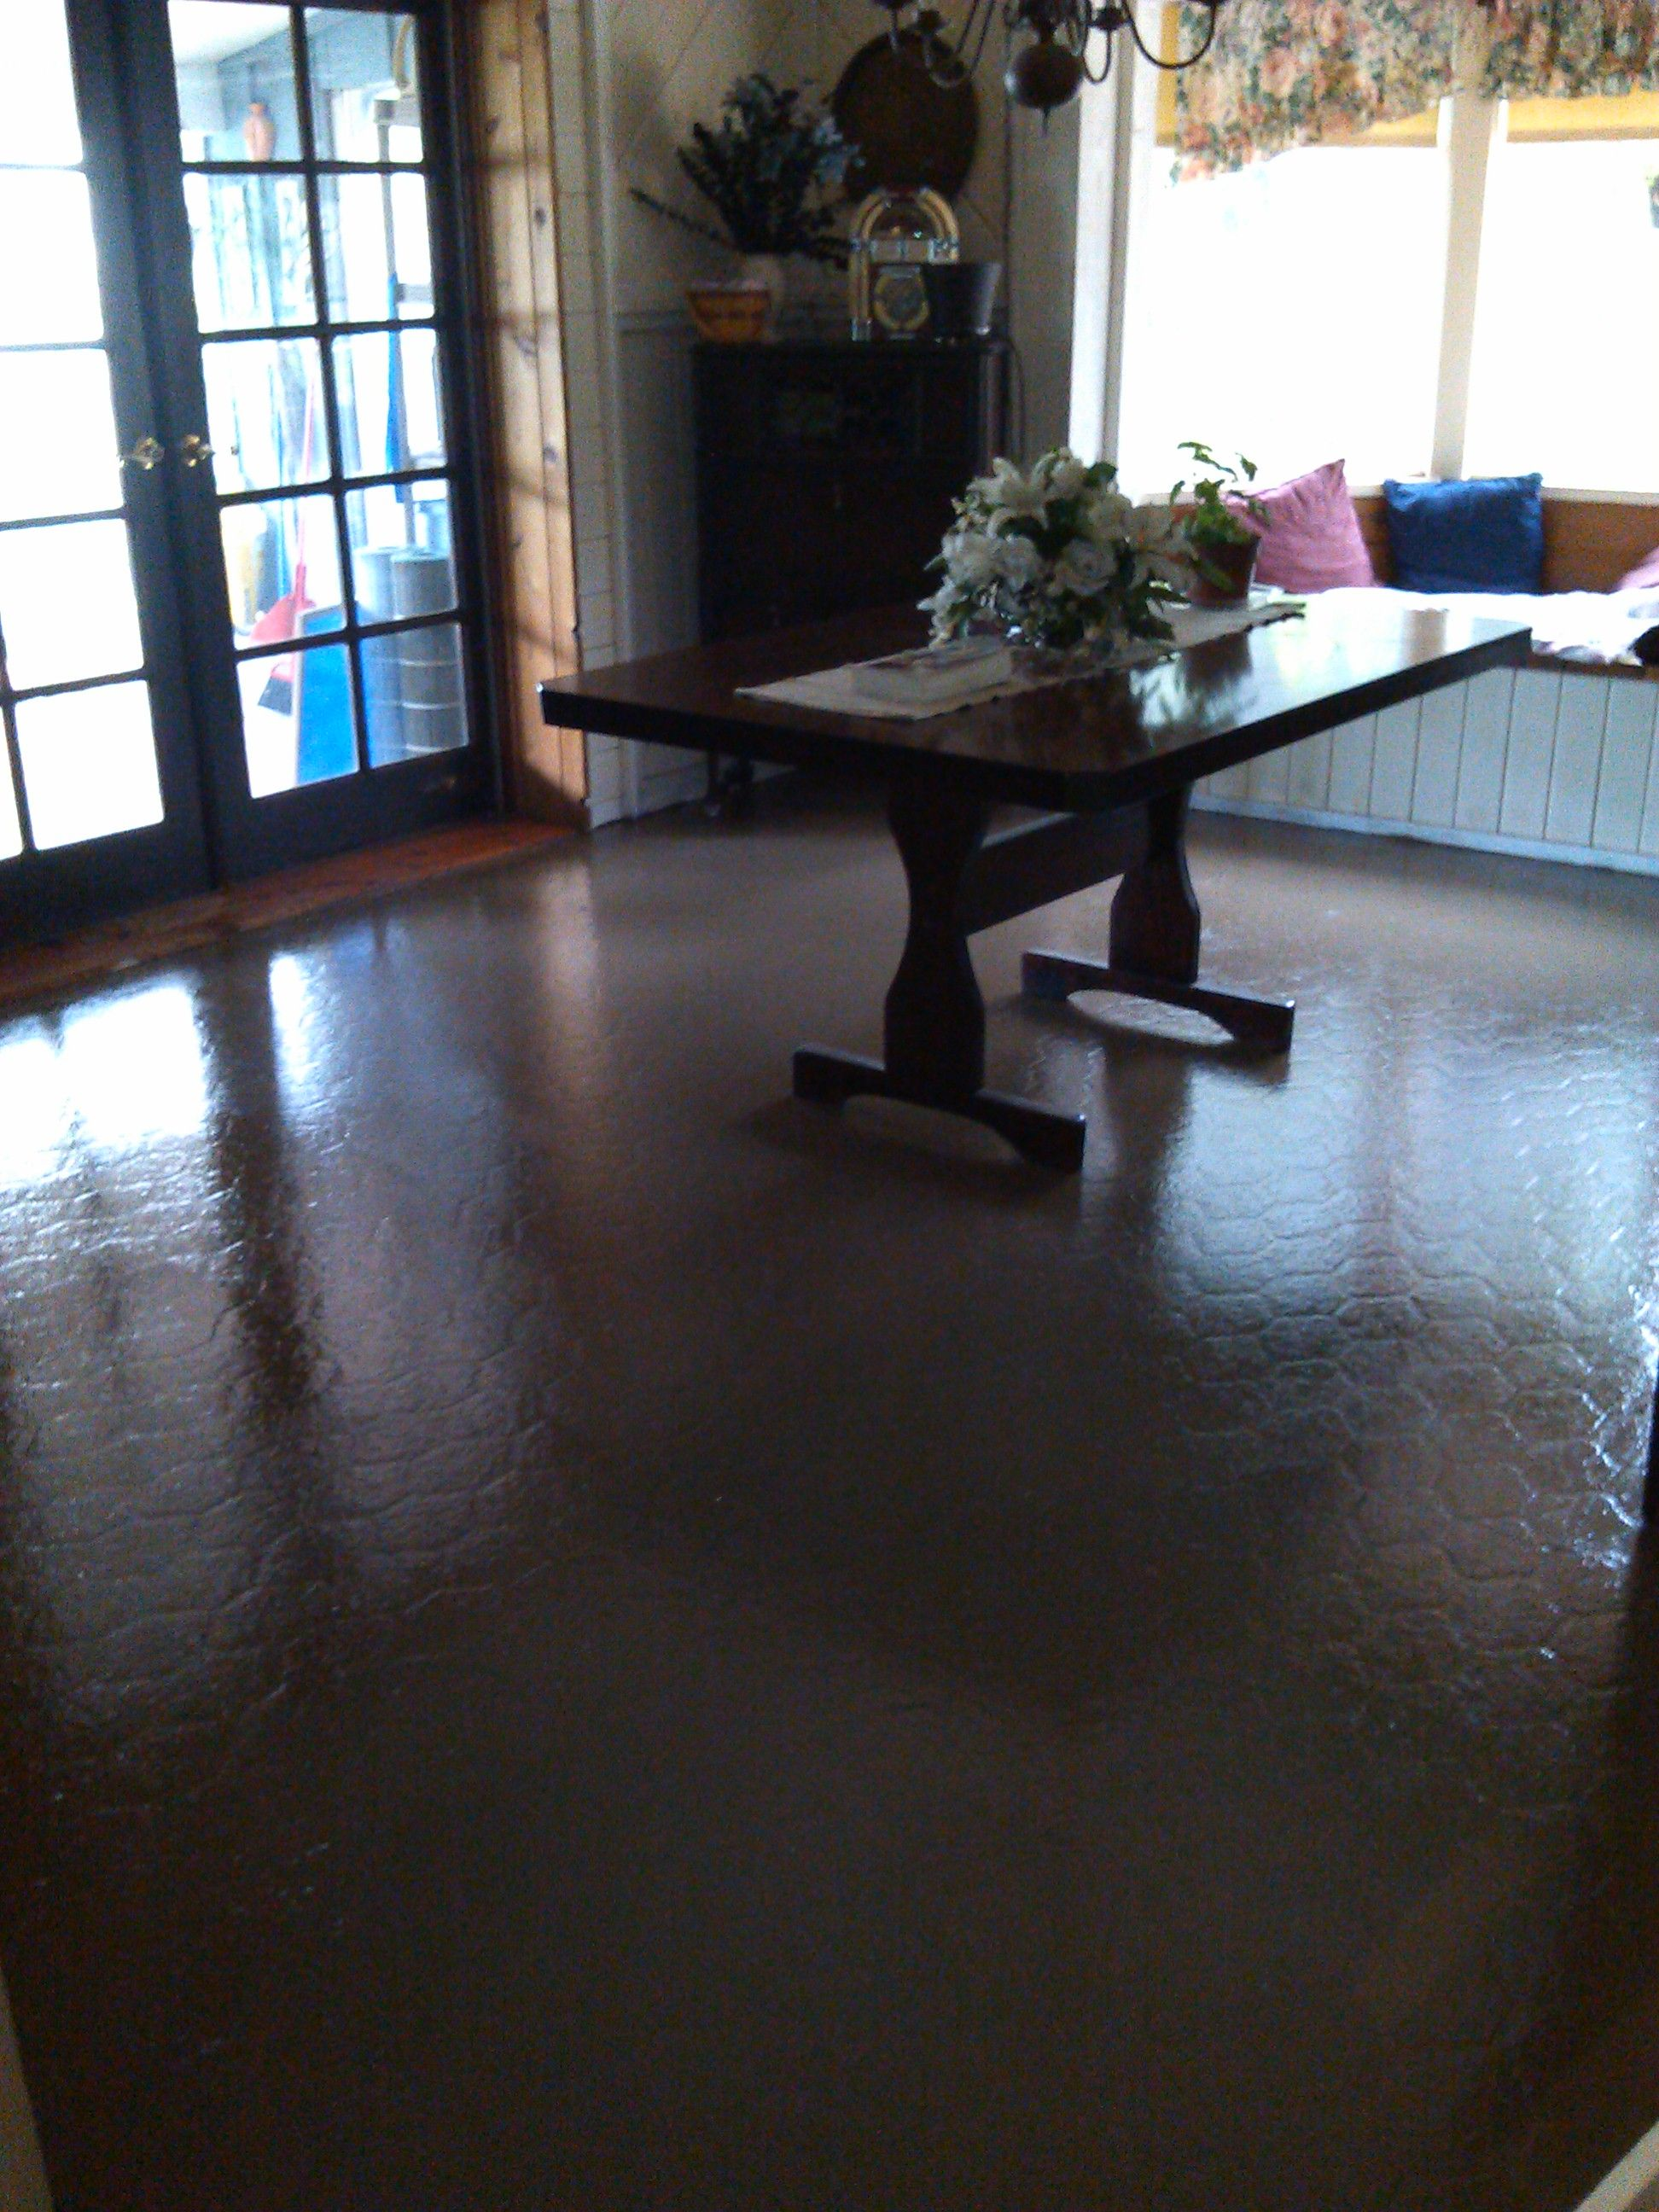 You can paint your ugly vinyl floors a few days ago i posted how to you can paint your ugly vinyl floors a few days ago i posted how to paint vinyl or linoleum floors i sanded the floor used kiltz primer dailygadgetfo Image collections